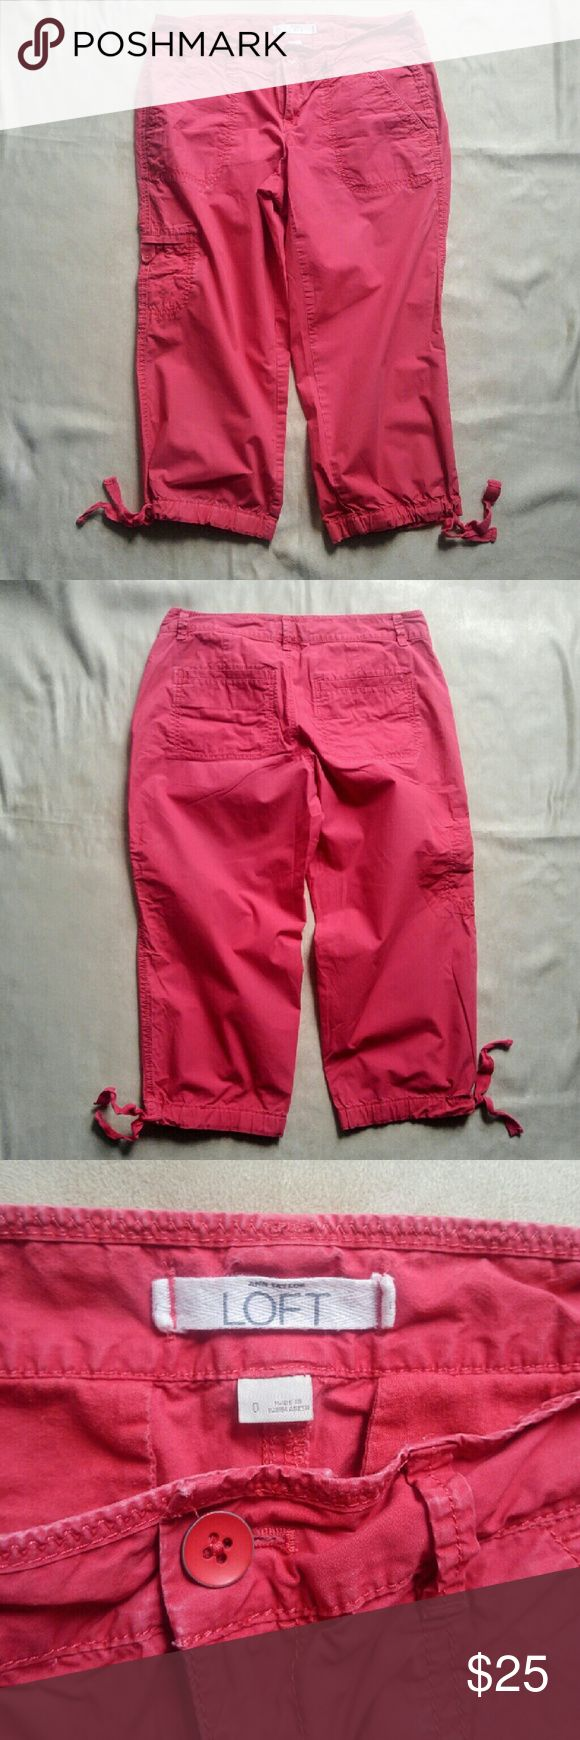 Ann Taylor Loft Coral Capri Pants Cute coral Capri pants. Drawstring at the bottom hens. Front, back and side pocket. Really cute button.   Size 0.  In great shape. No stains, rips or snags. LOFT Pants Capris